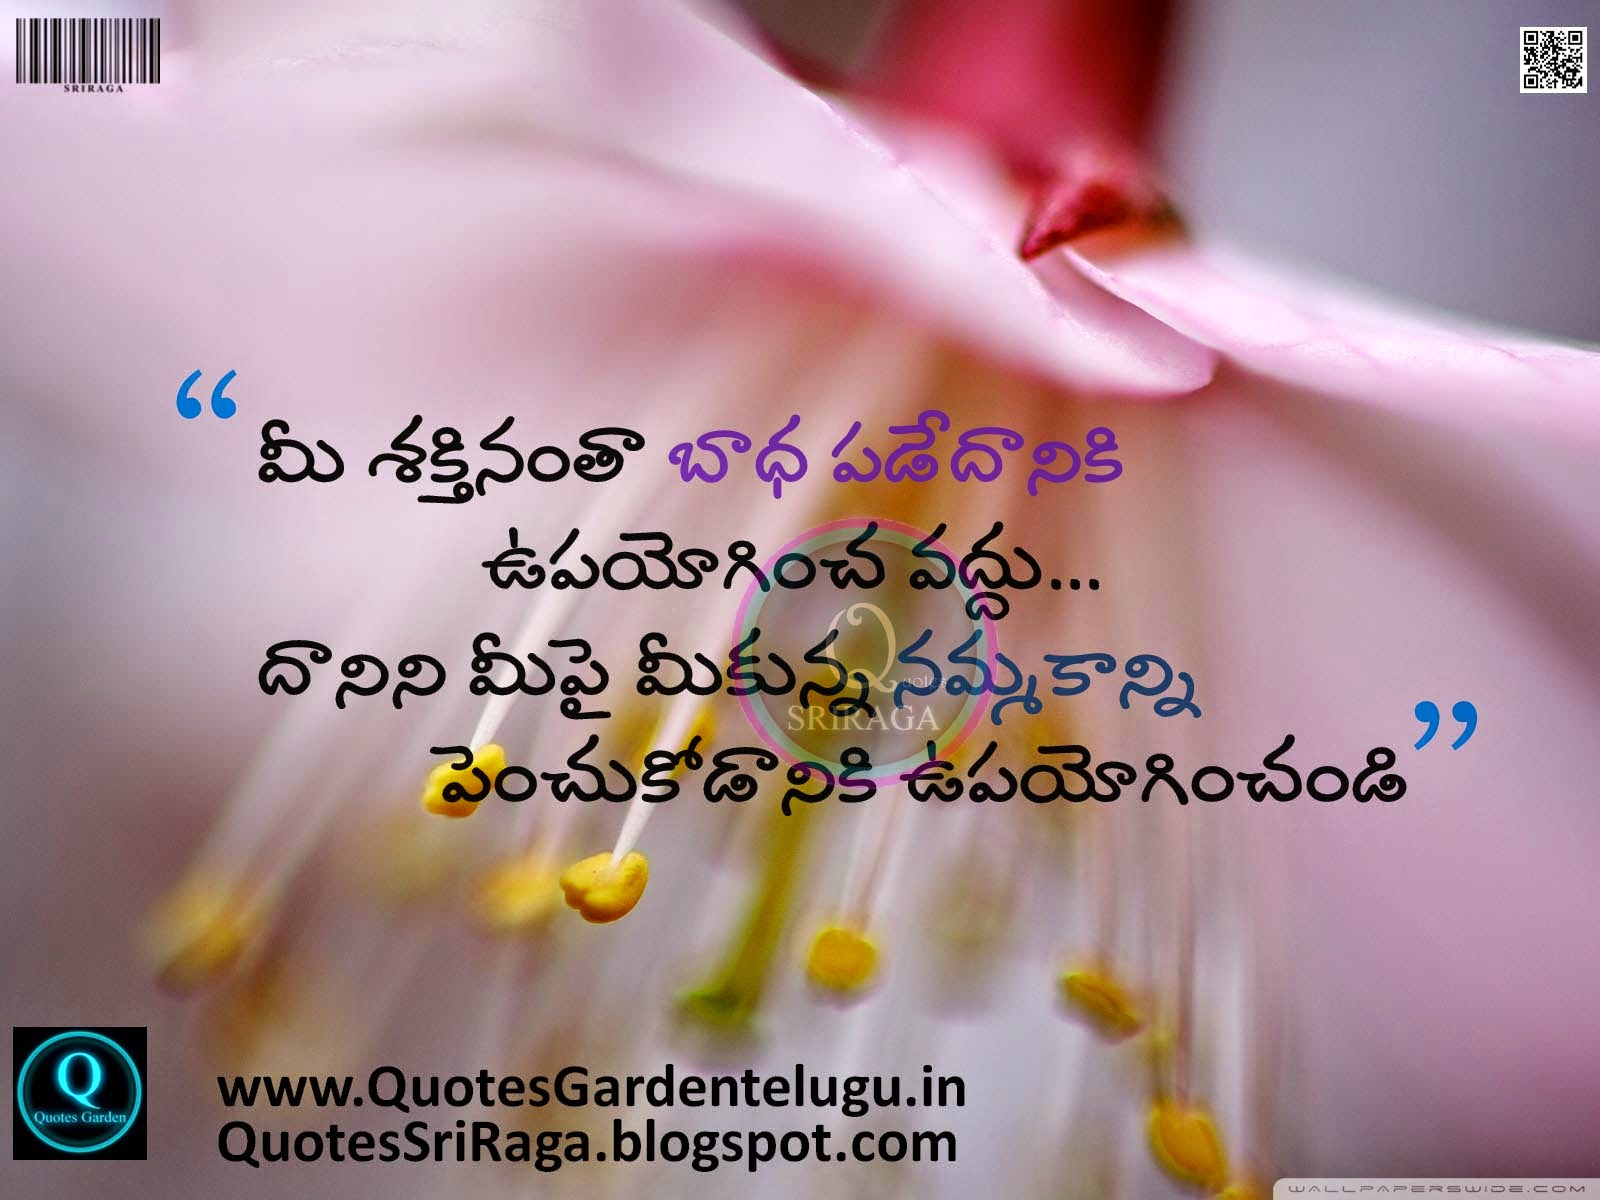 Famous Telugu Top Inspirational Quotes Goodreads 459 Images Quotes